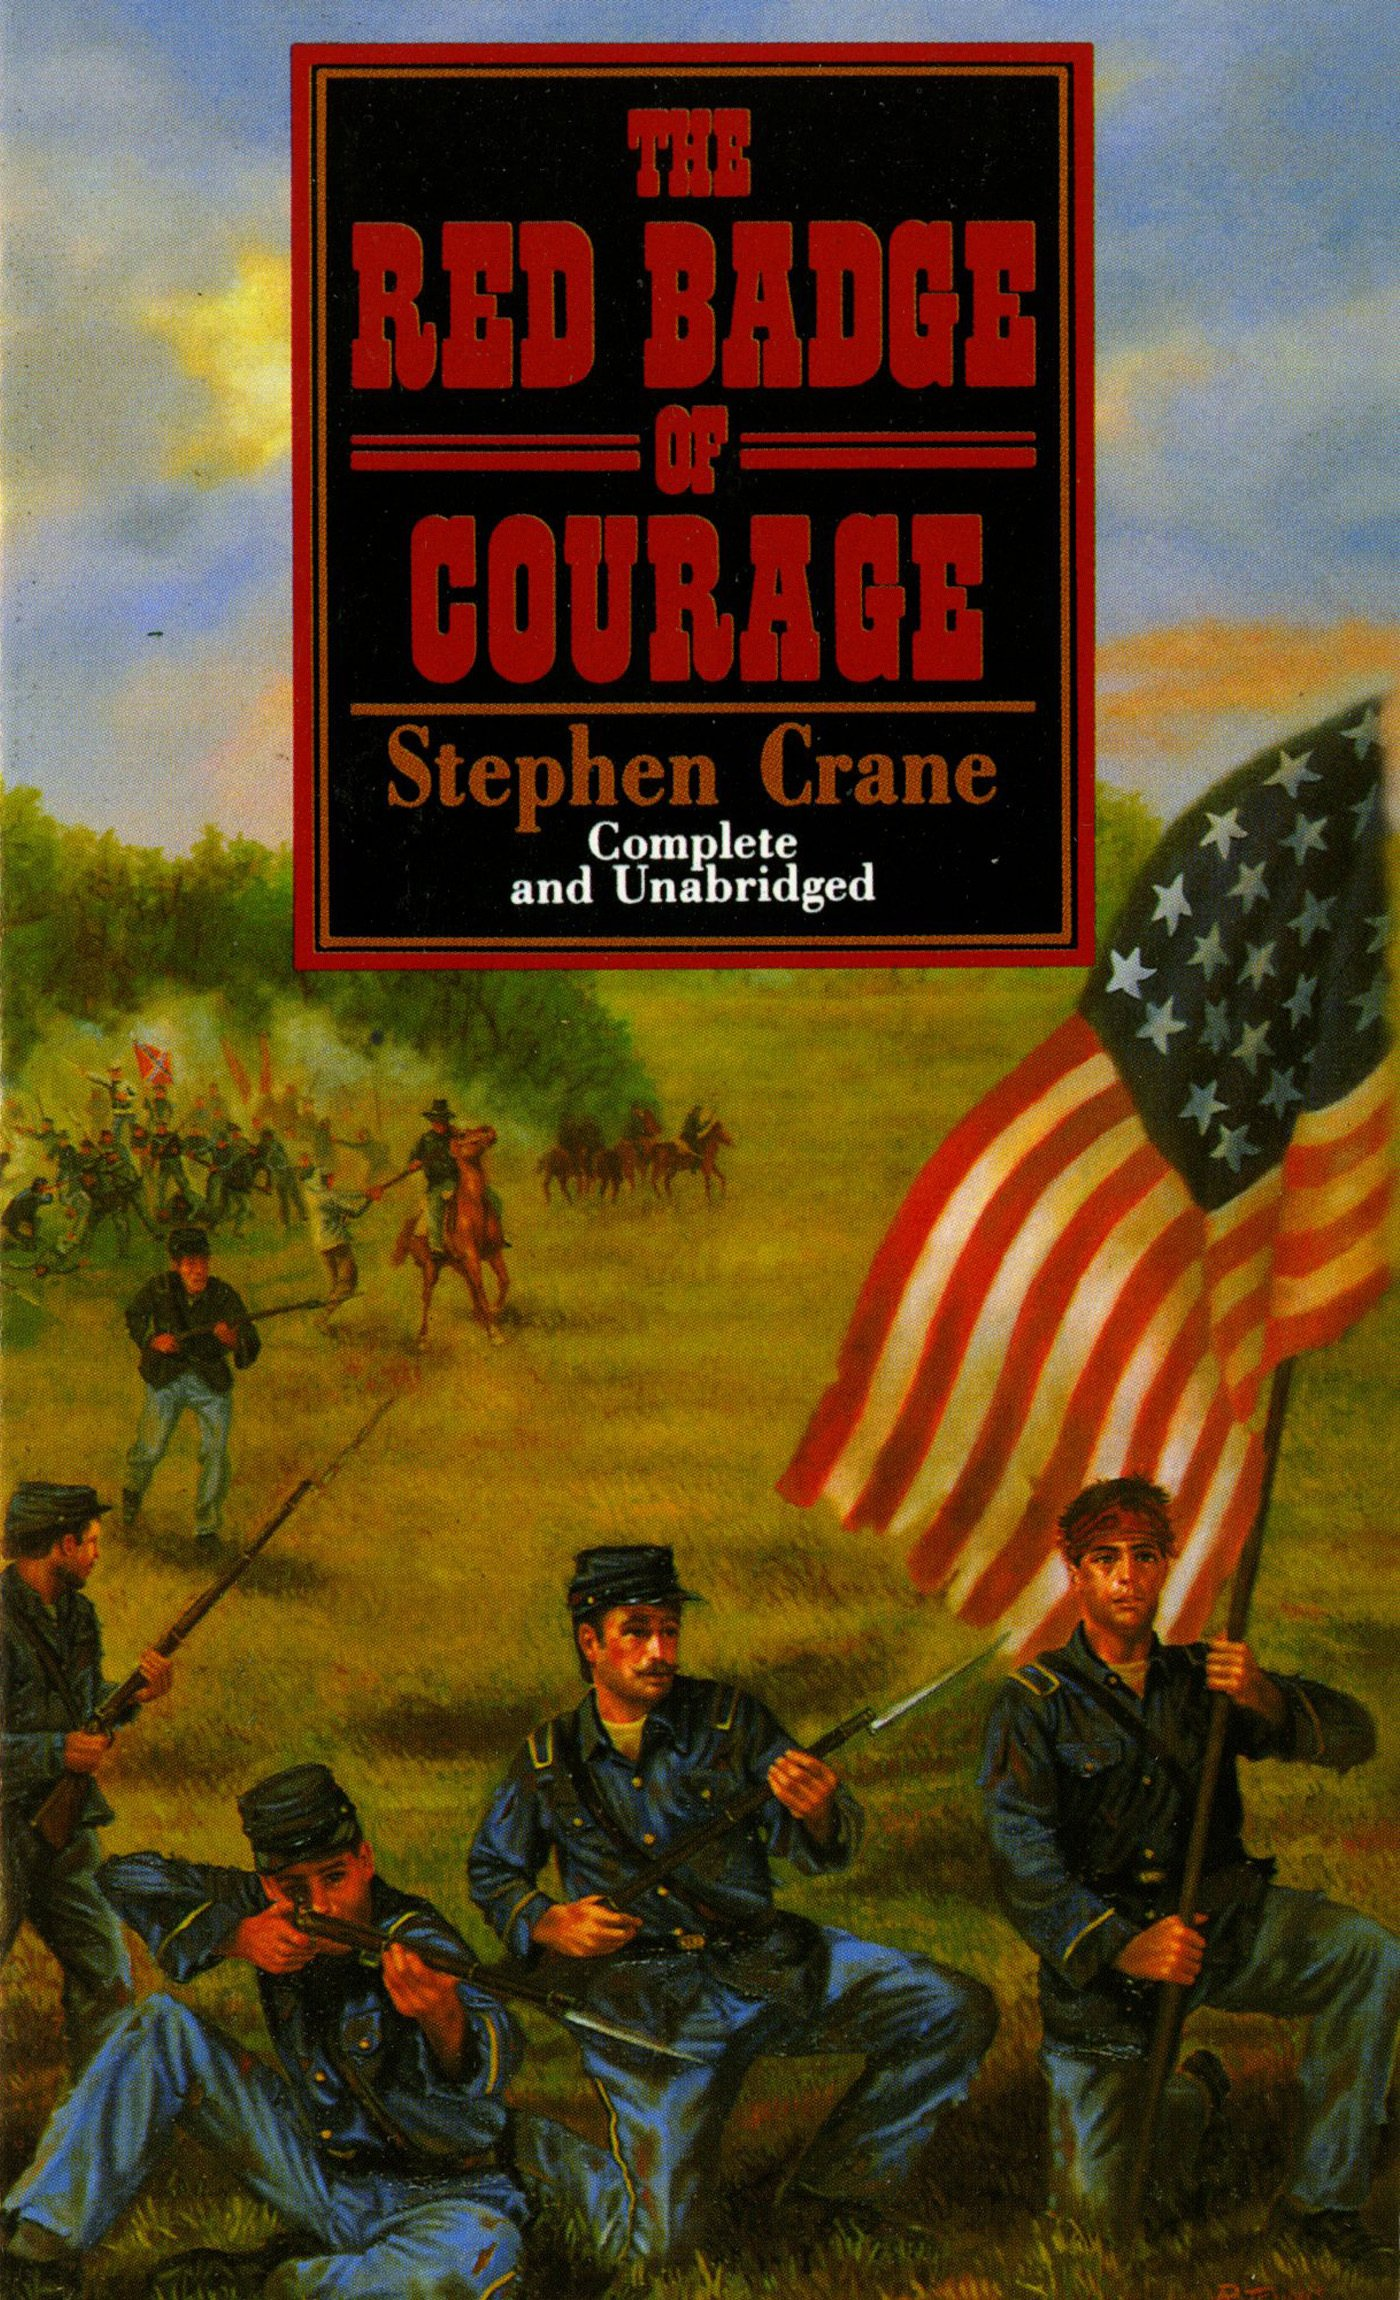 Amazon.com: The Red Badge of Courage (Tor Classics) (9780812504798): Crane, Stephen: Books